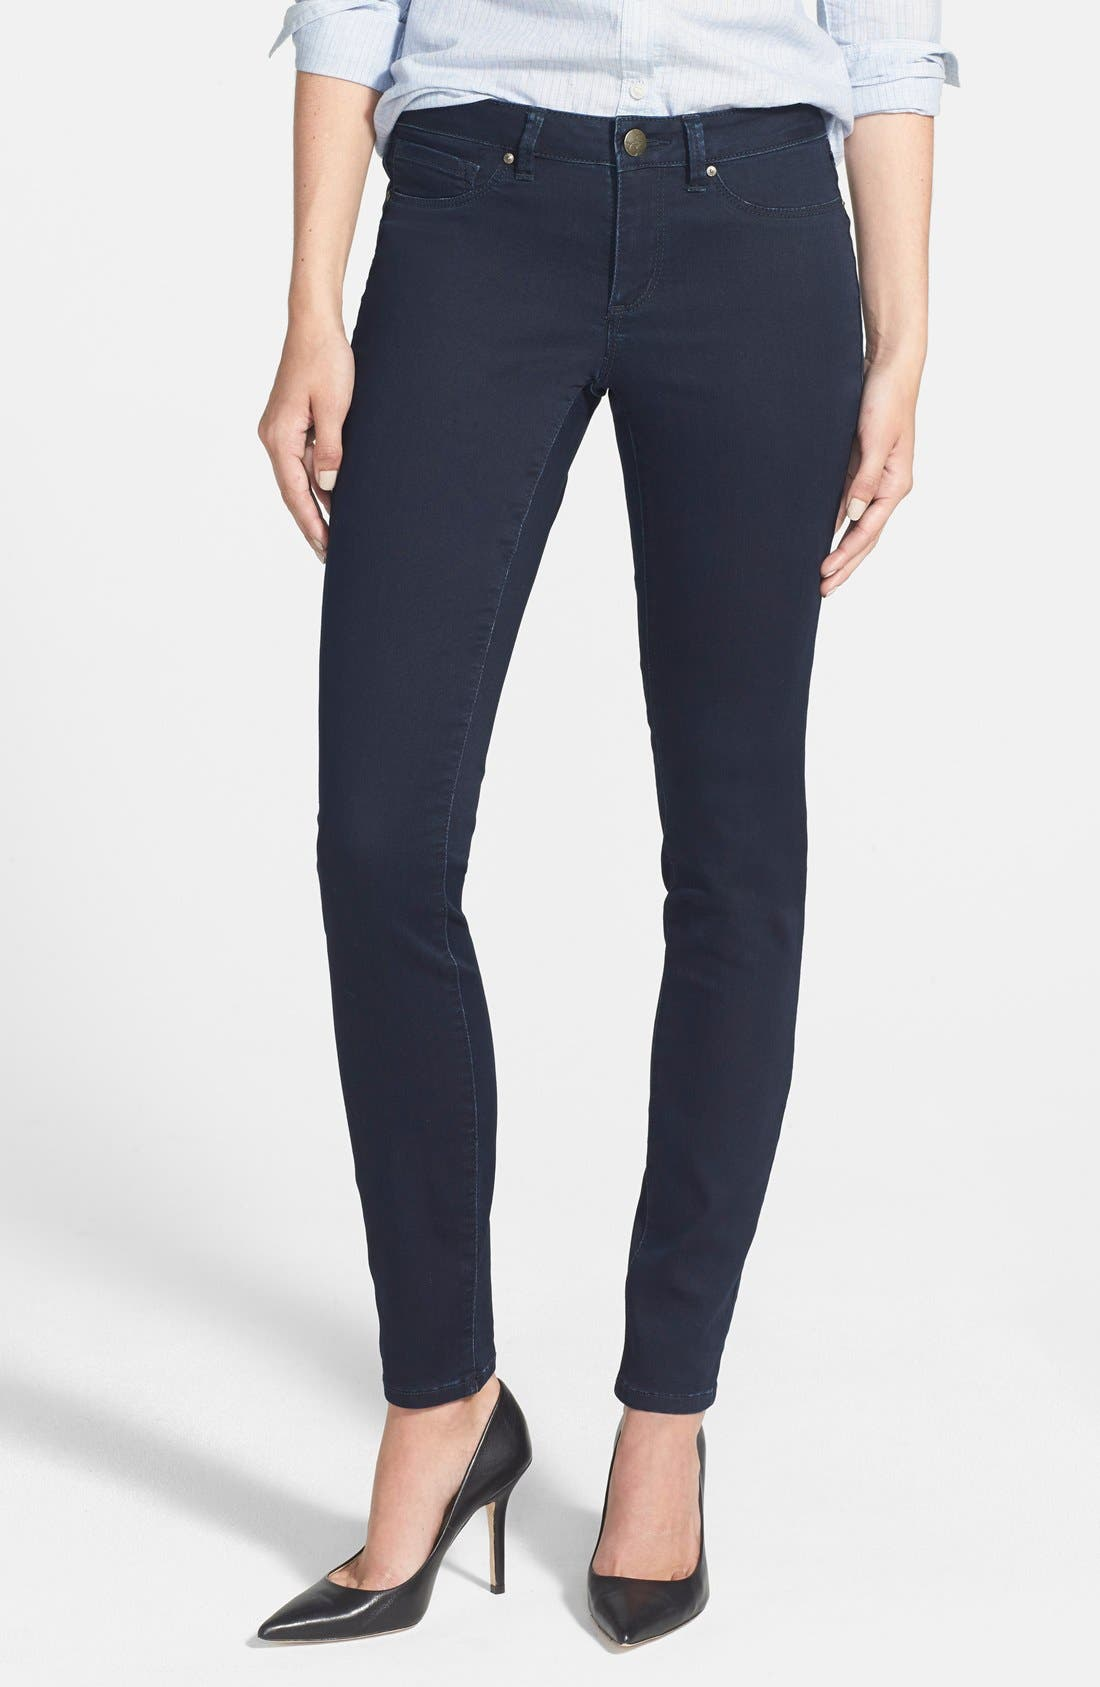 Alternate Image 1 Selected - Jessica Simpson 'Kiss Me' Super Skinny Jeans (Enzyme Rinse)